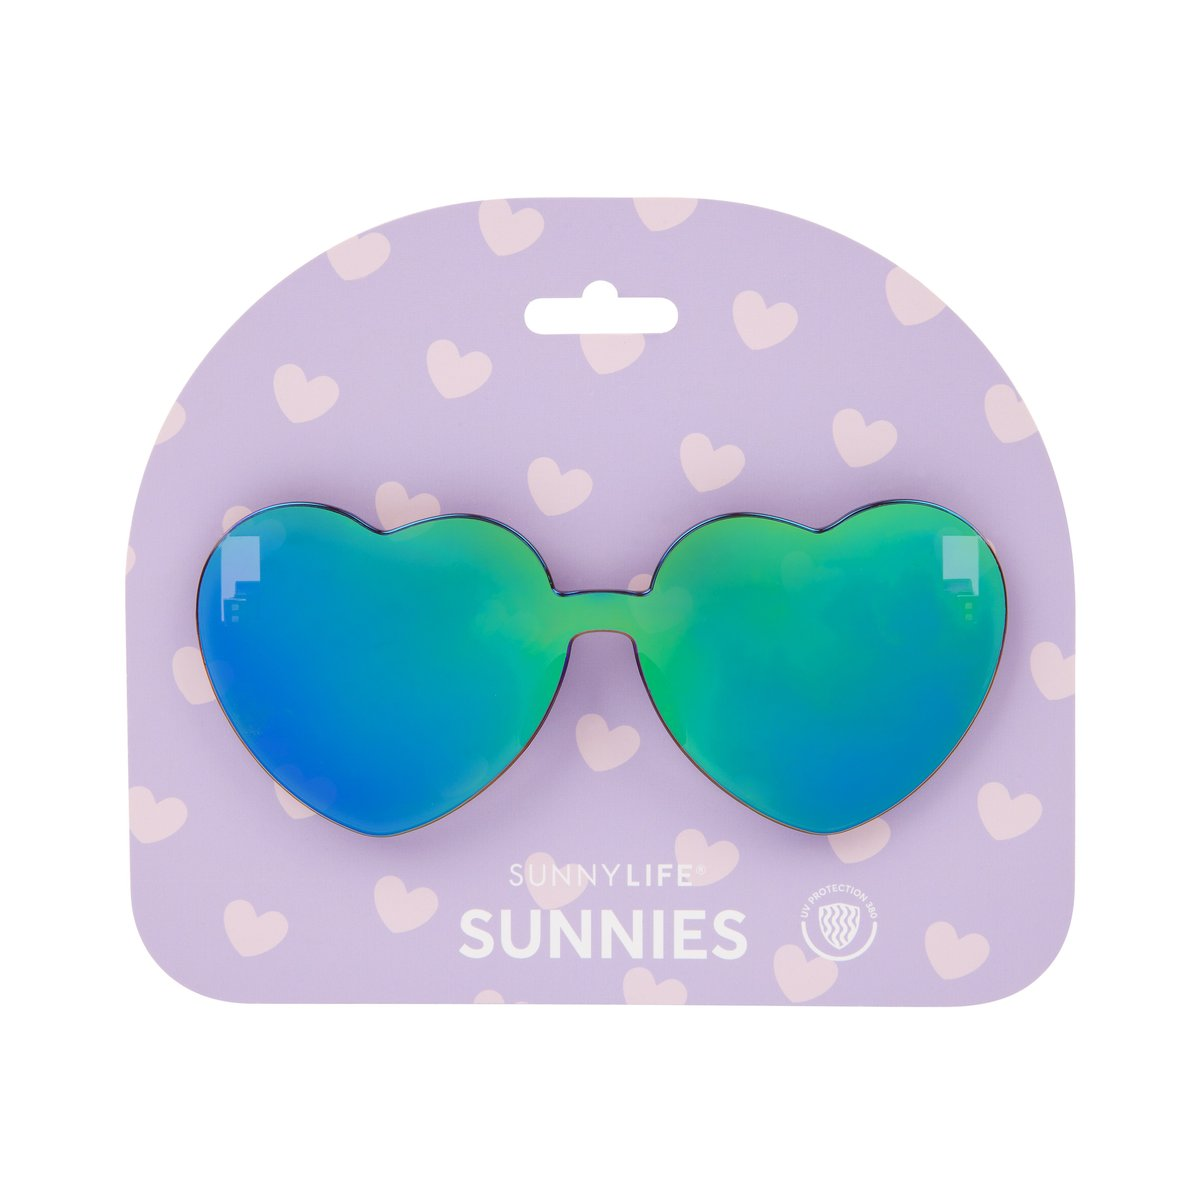 SUNNYLIFE | Sunnies Midnight Iridescent